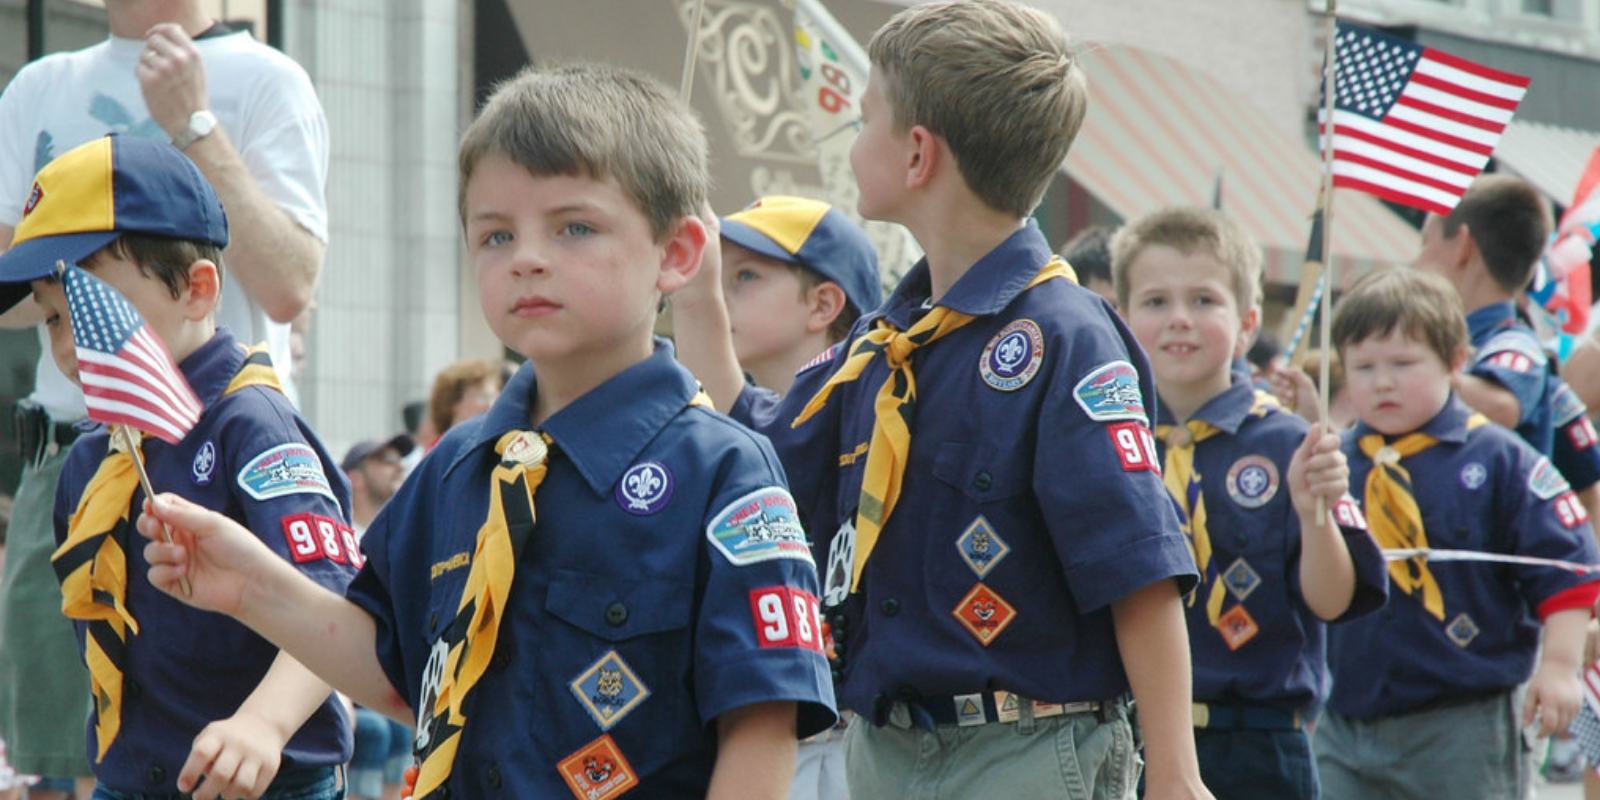 American Boy Scouts have gone WOKE: Eagles now required to earn 'diversity and inclusion' badges